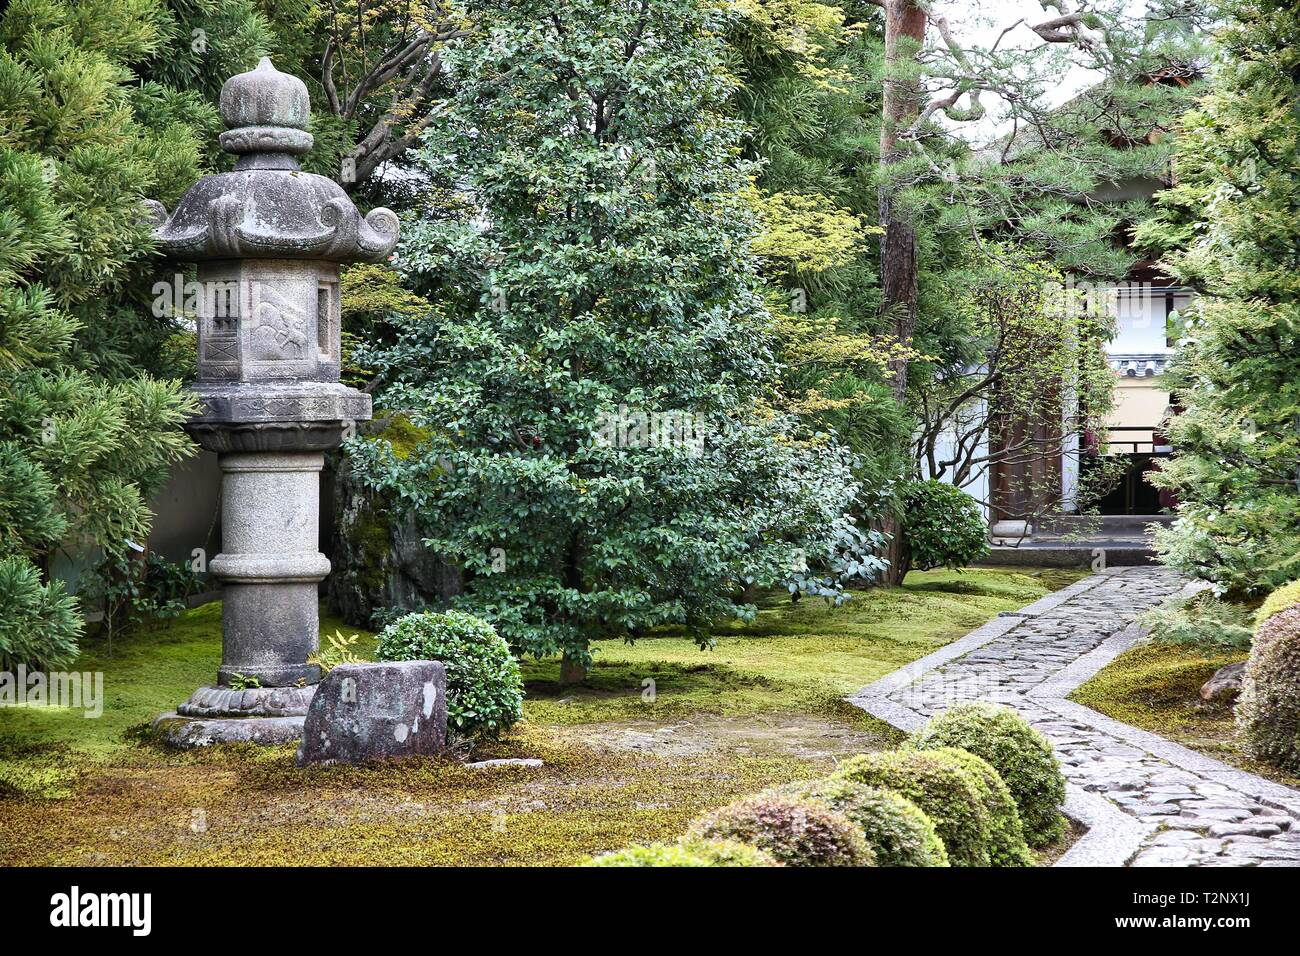 Kyoto, Japan - zen garden at famous Daitokuji (Daitoku-ji) Temple. Buddhist zen temple of Rinzai school. - Stock Image